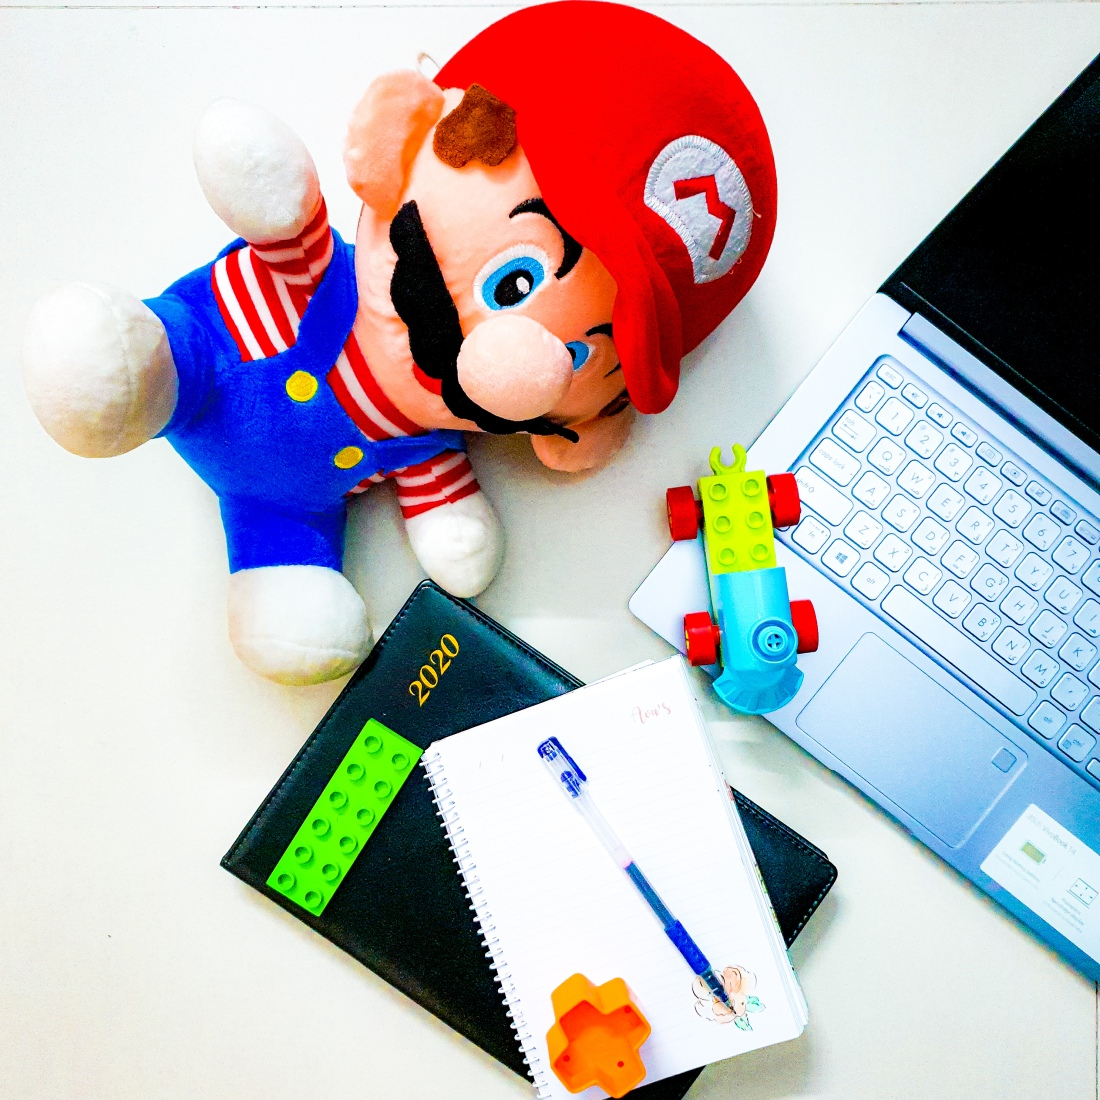 a stuffed toy of super mario with a notebook and a pen. there is a laptop and lego blocks of a toddler. this is a photo taken by a dhaka based mom blogger living in bangladesh. a feminist blogger